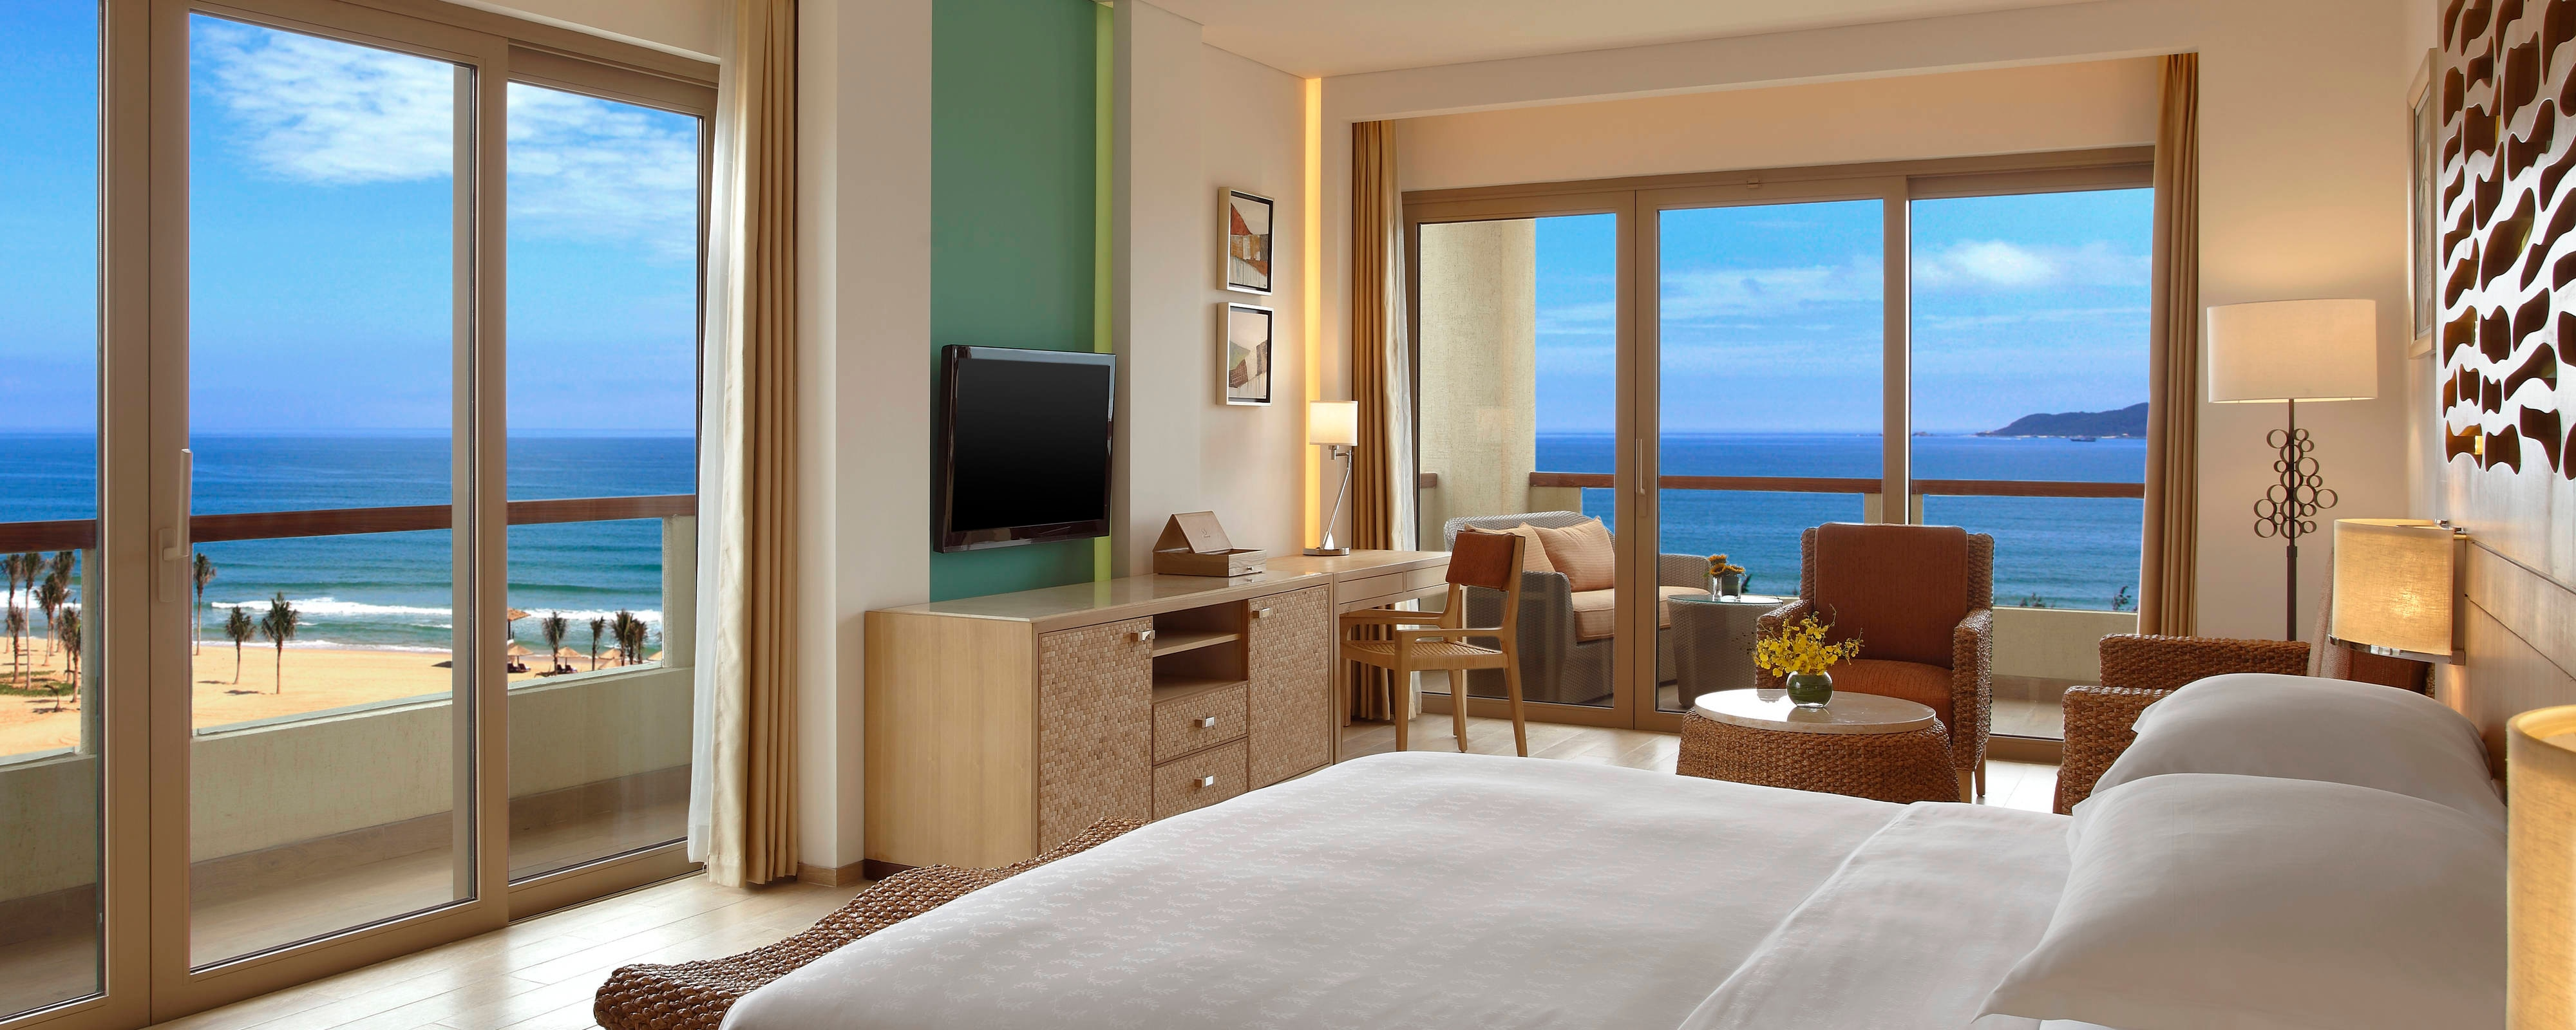 Suite Grand Deluxe con vista al mar